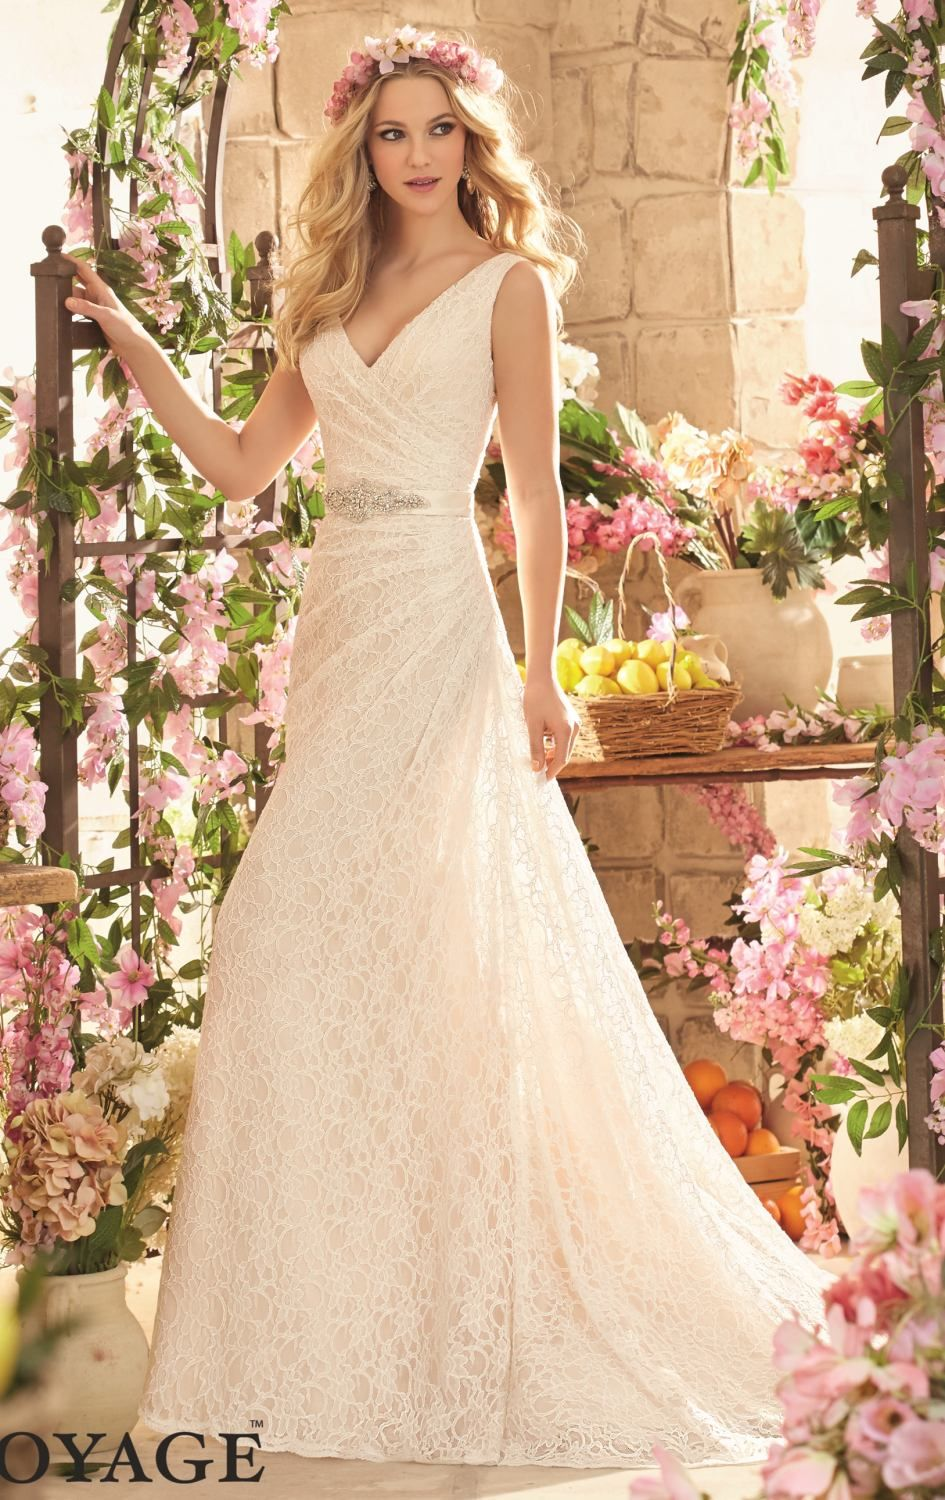 Mori lee by voyage by mori lee i want one of those clothes